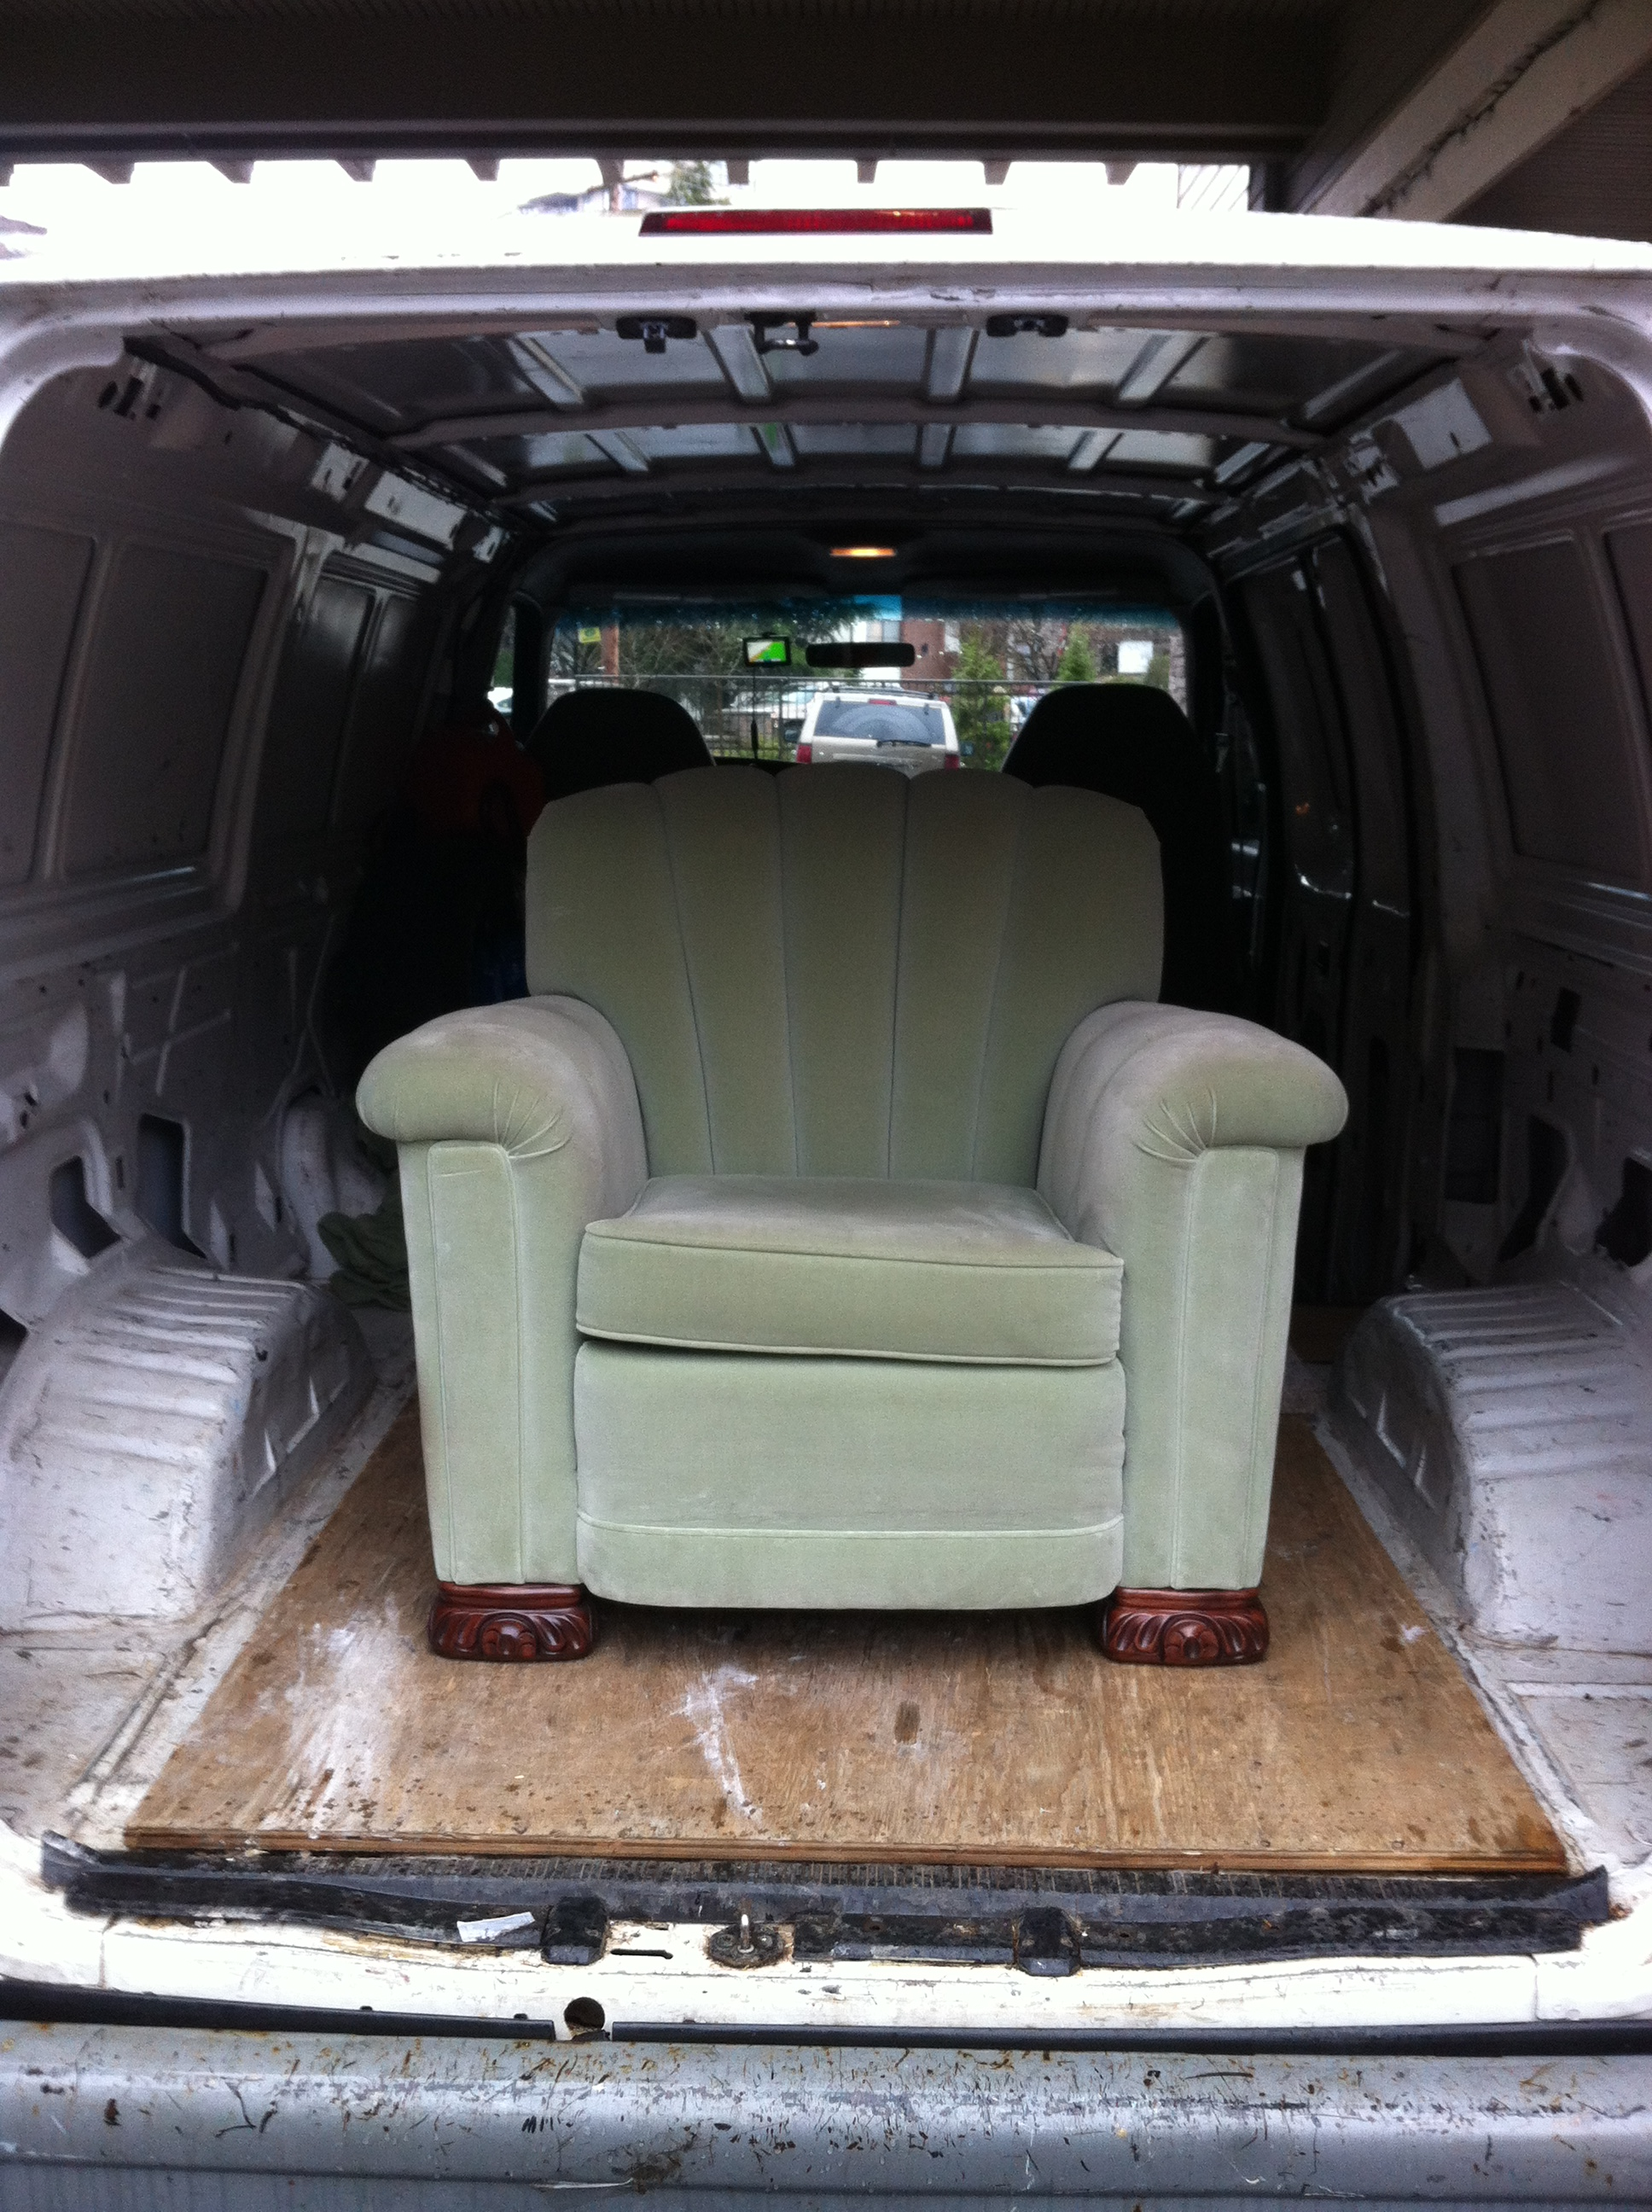 Craigslist furniture delivery service sam 39 s small moves for Affordable furniture delivery